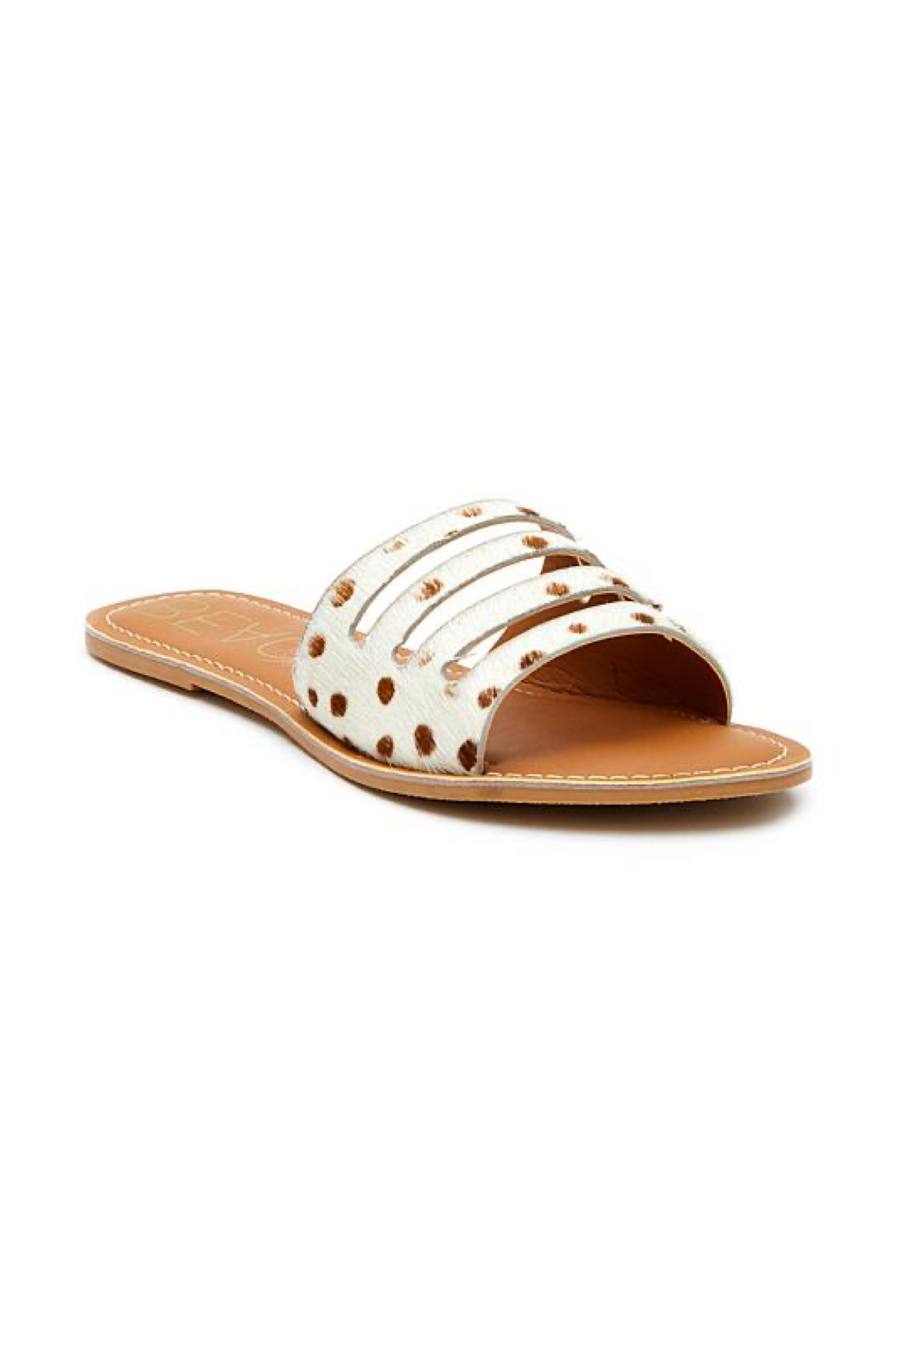 Brown Spot Calf Hair Boardwalk Slides by Matisse